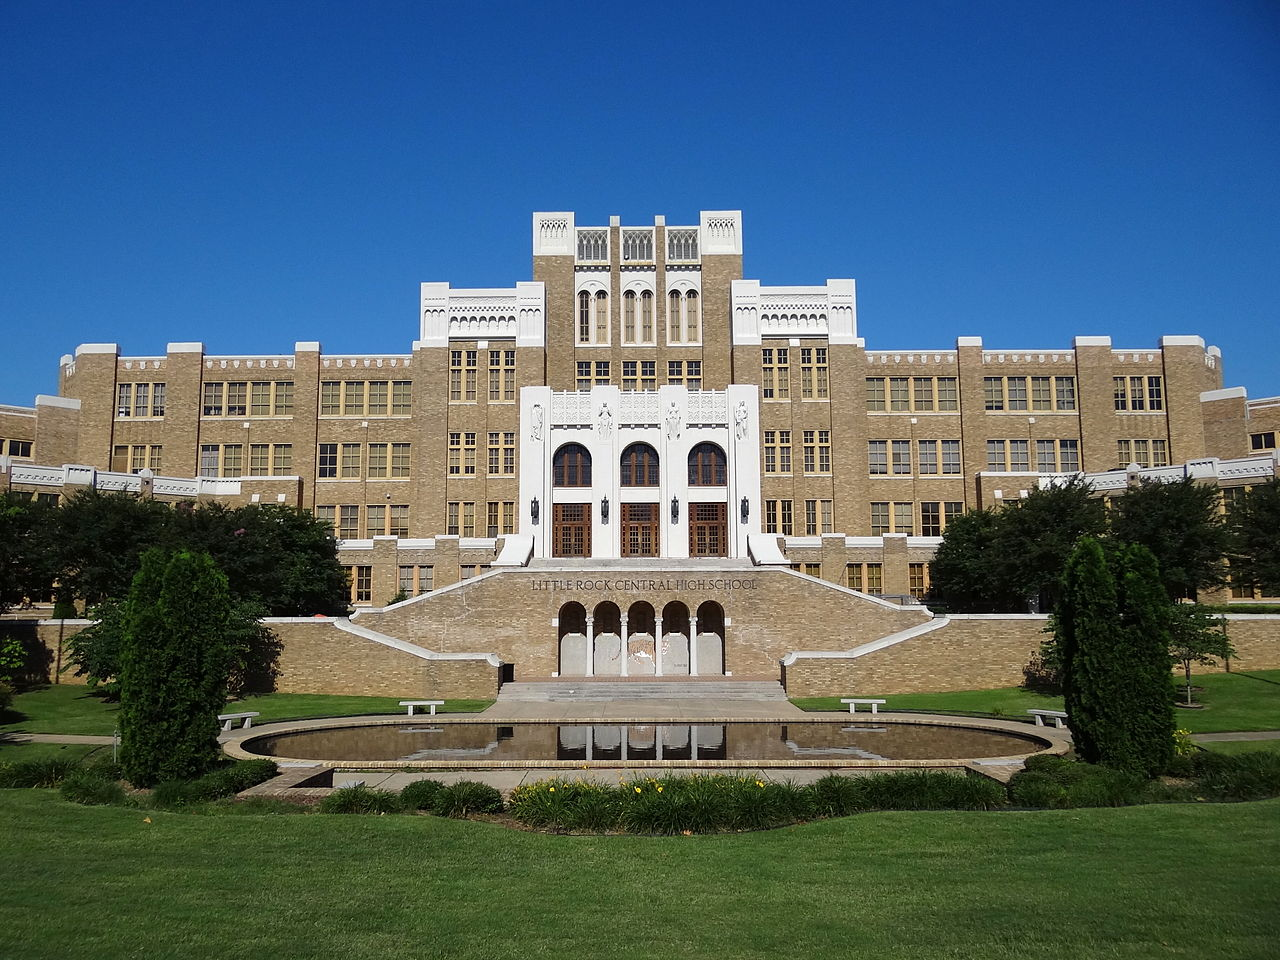 Don't Miss Out These Beautiful Place In Arkansas-Little Rock, Little Rock High School National Historic Site